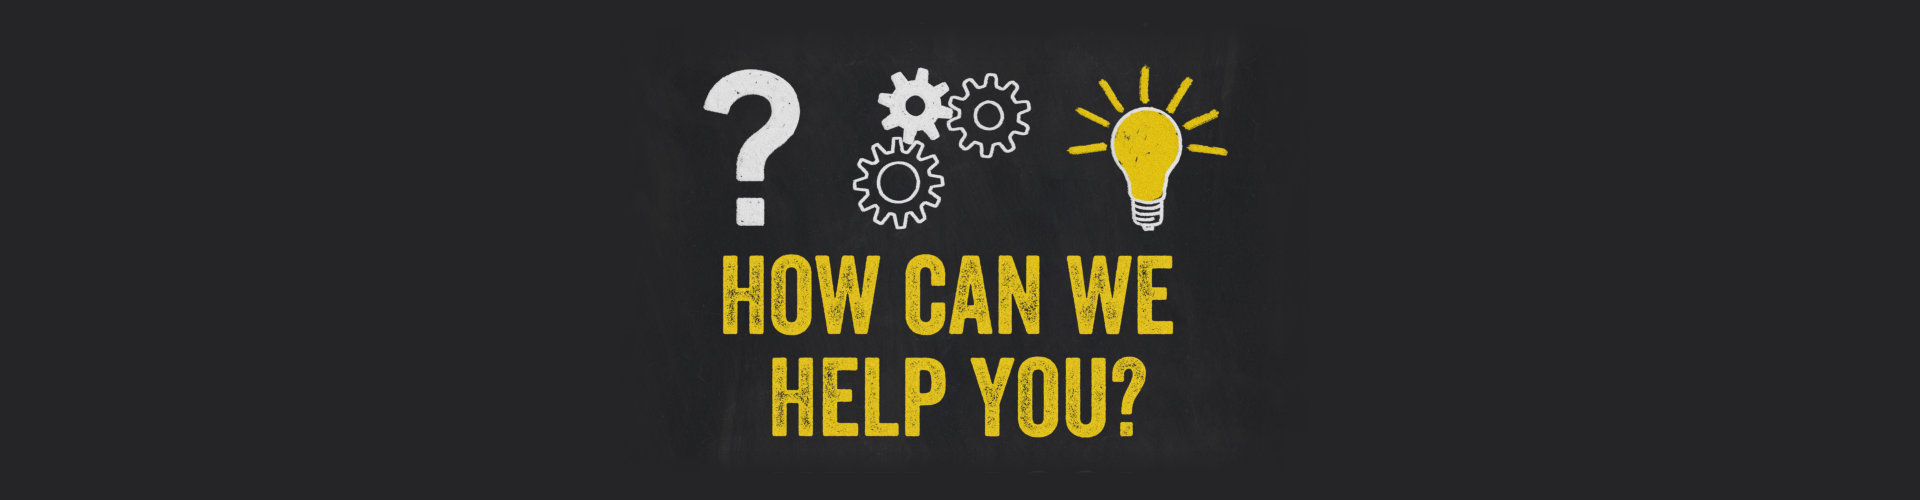 Question Mark, Gears, Light Bulb Concept - How can we help you